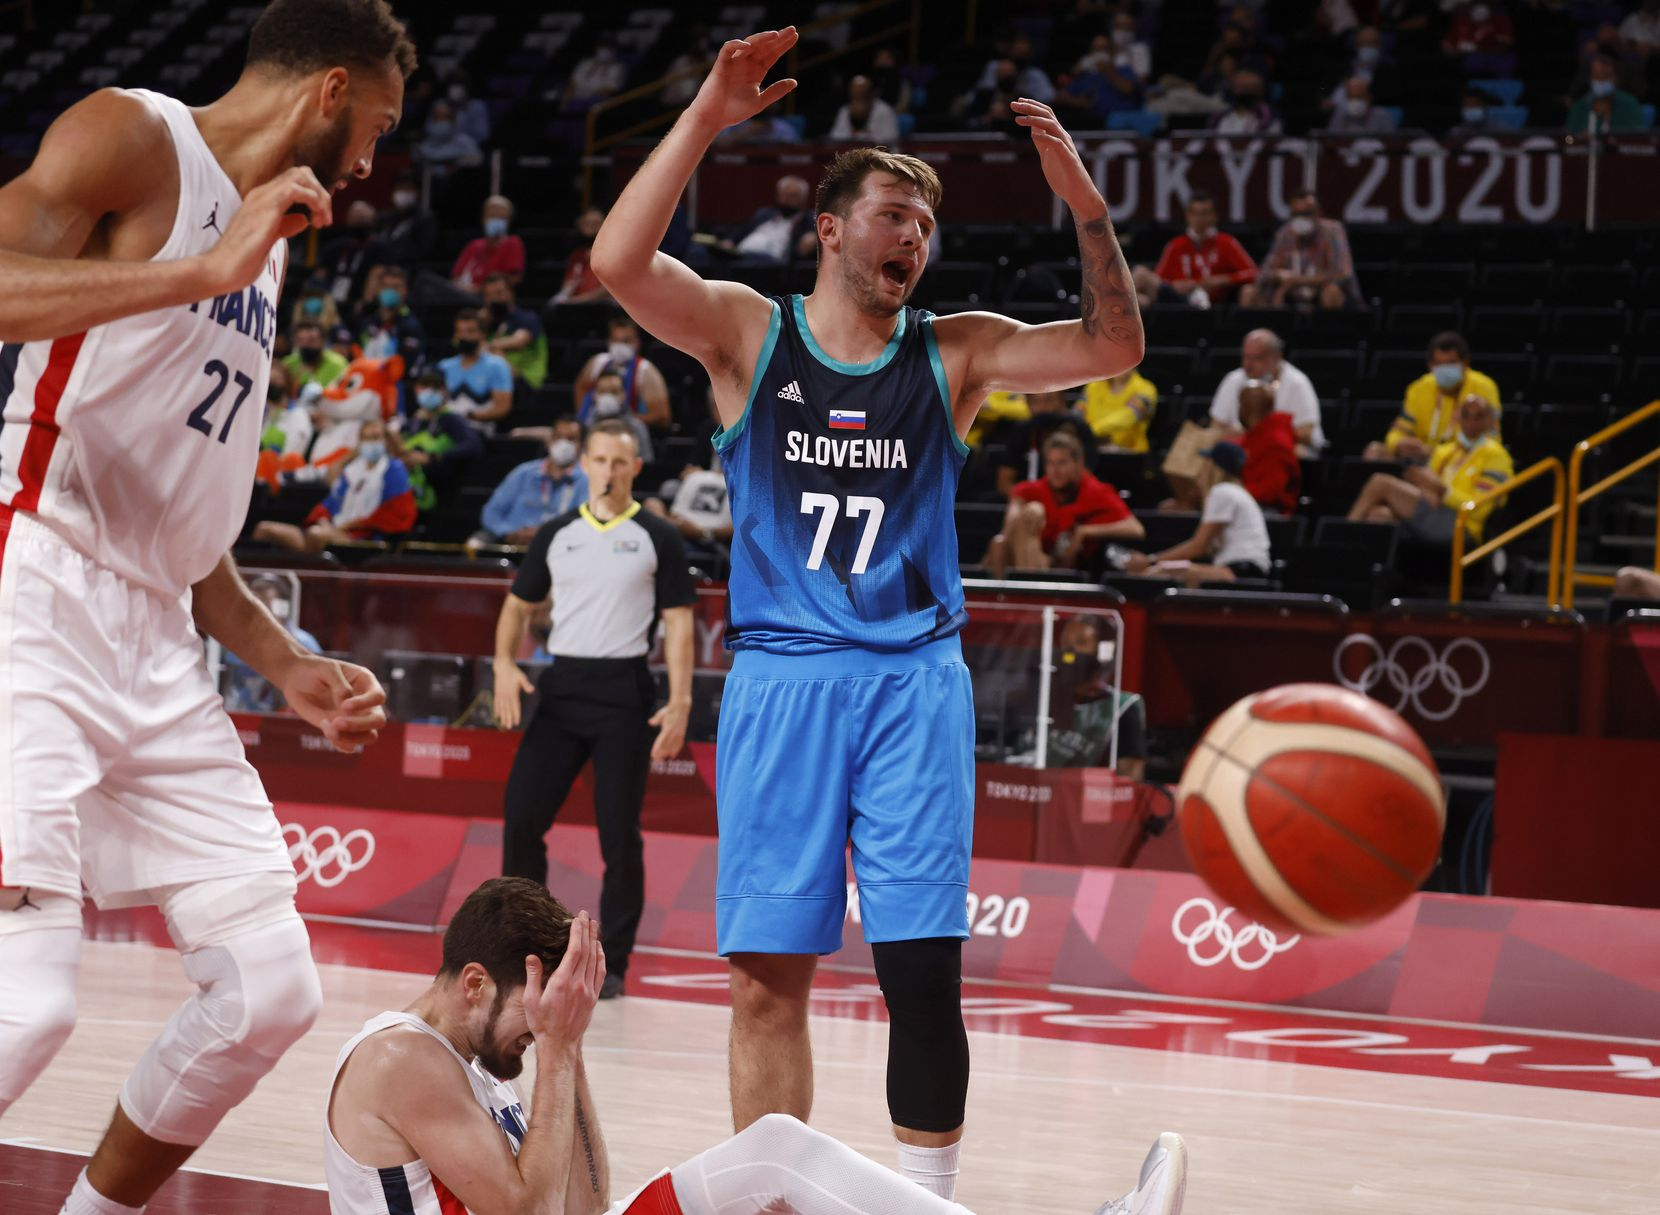 Slovenia's Luka Doncic (77) reacts after getting called for a foul on France's Nando de Cold (12) as France's Rudy Gobert (27) looks on during the second half of a men's basketball semifinal at the postponed 2020 Tokyo Olympics at Saitama Super Arena, on Thursday, August 5, 2021, in Saitama, Japan. France defeated Slovenia 90-89. Slovenia will play in the bronze medal game. (Vernon Bryant/The Dallas Morning News)